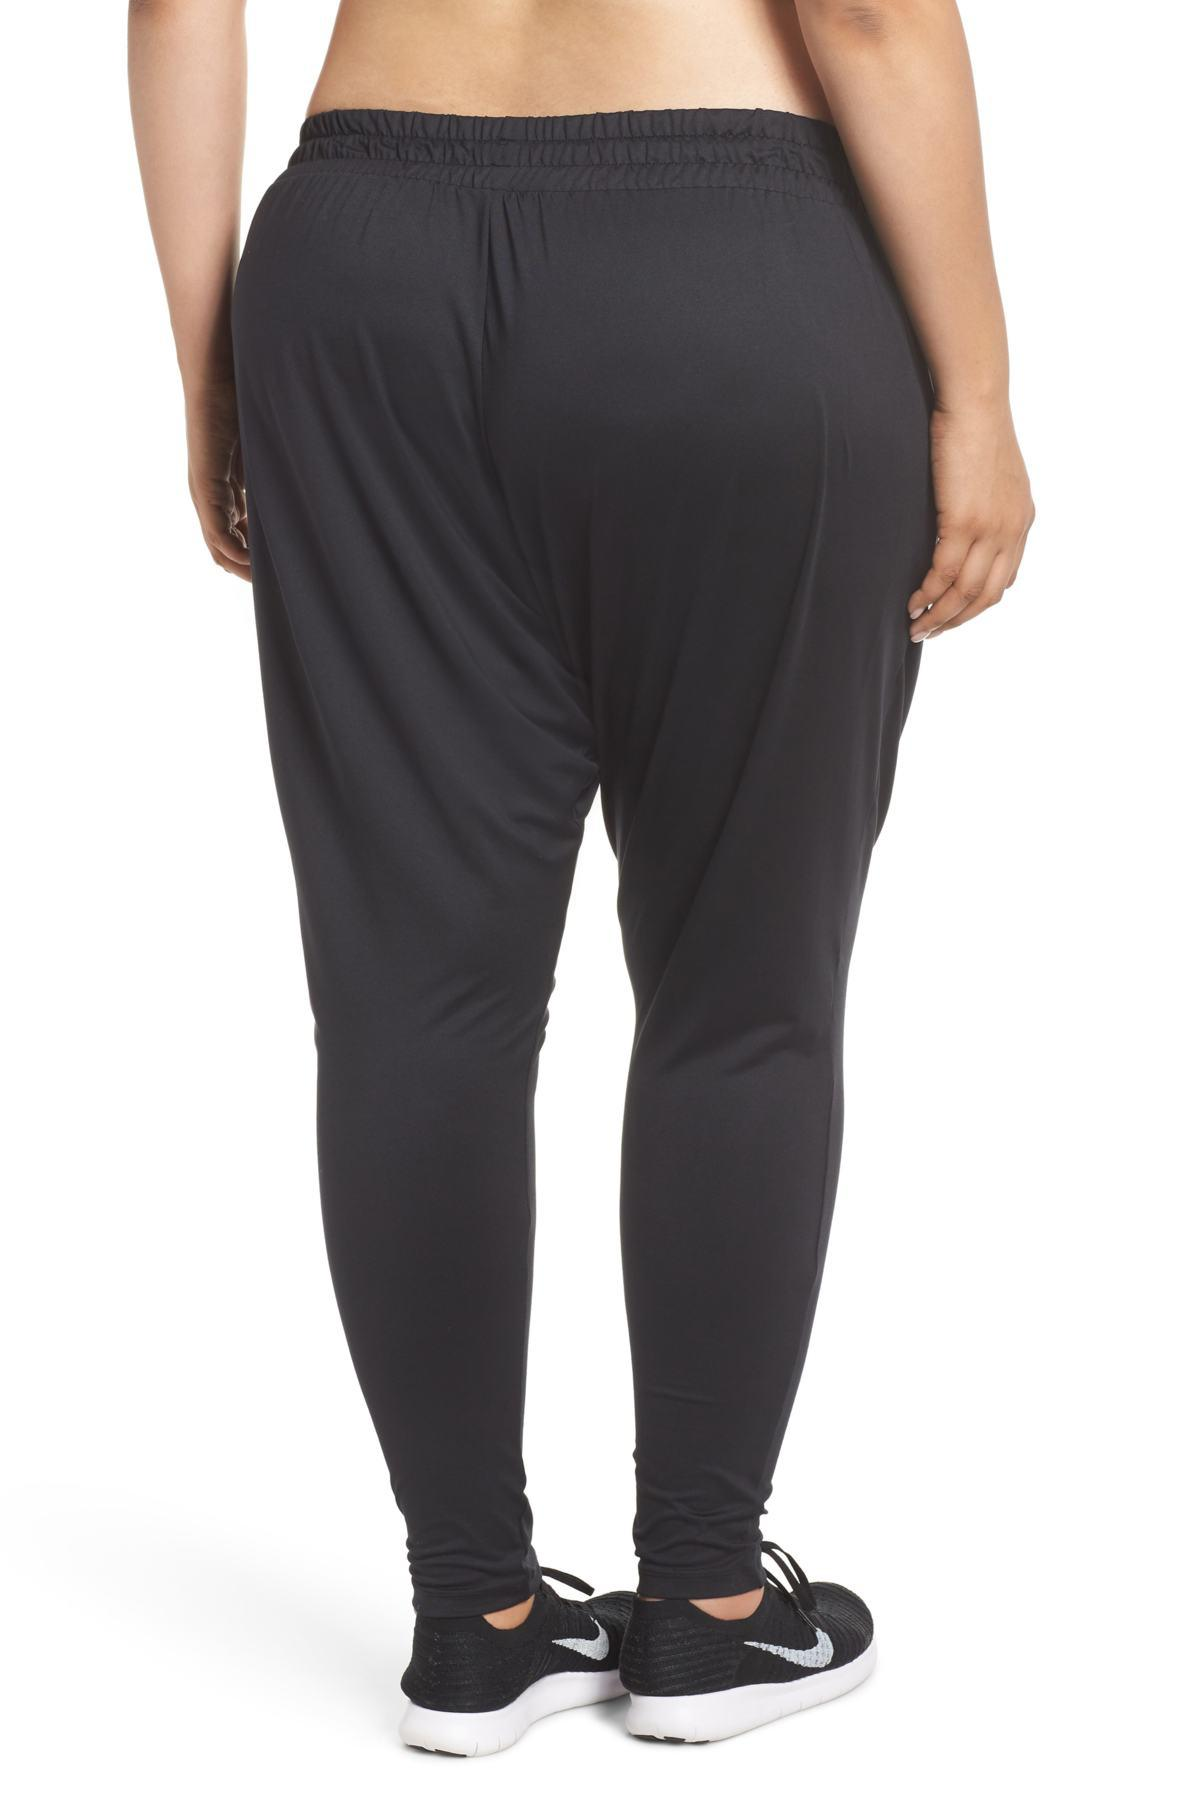 85d7117cf25a Lyst - Nike Dry Lux Flow High Rise Training Pants (plus Size) in Black